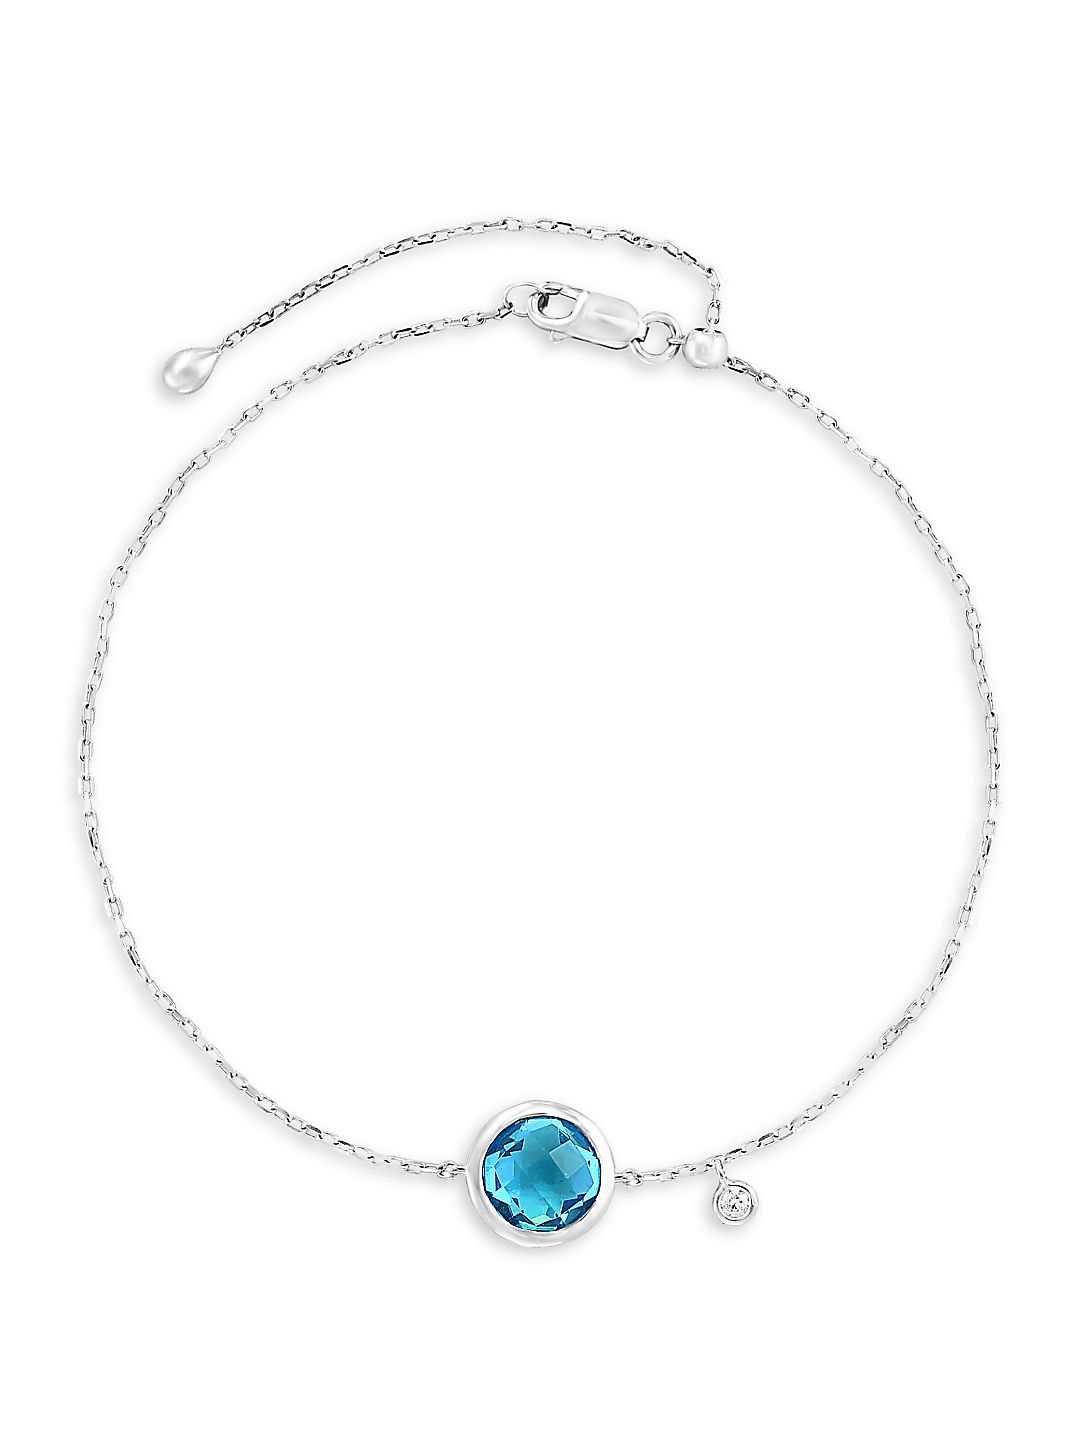 14K White Gold, Round Blue Topaz Disc & Diamond Charm Bracelet